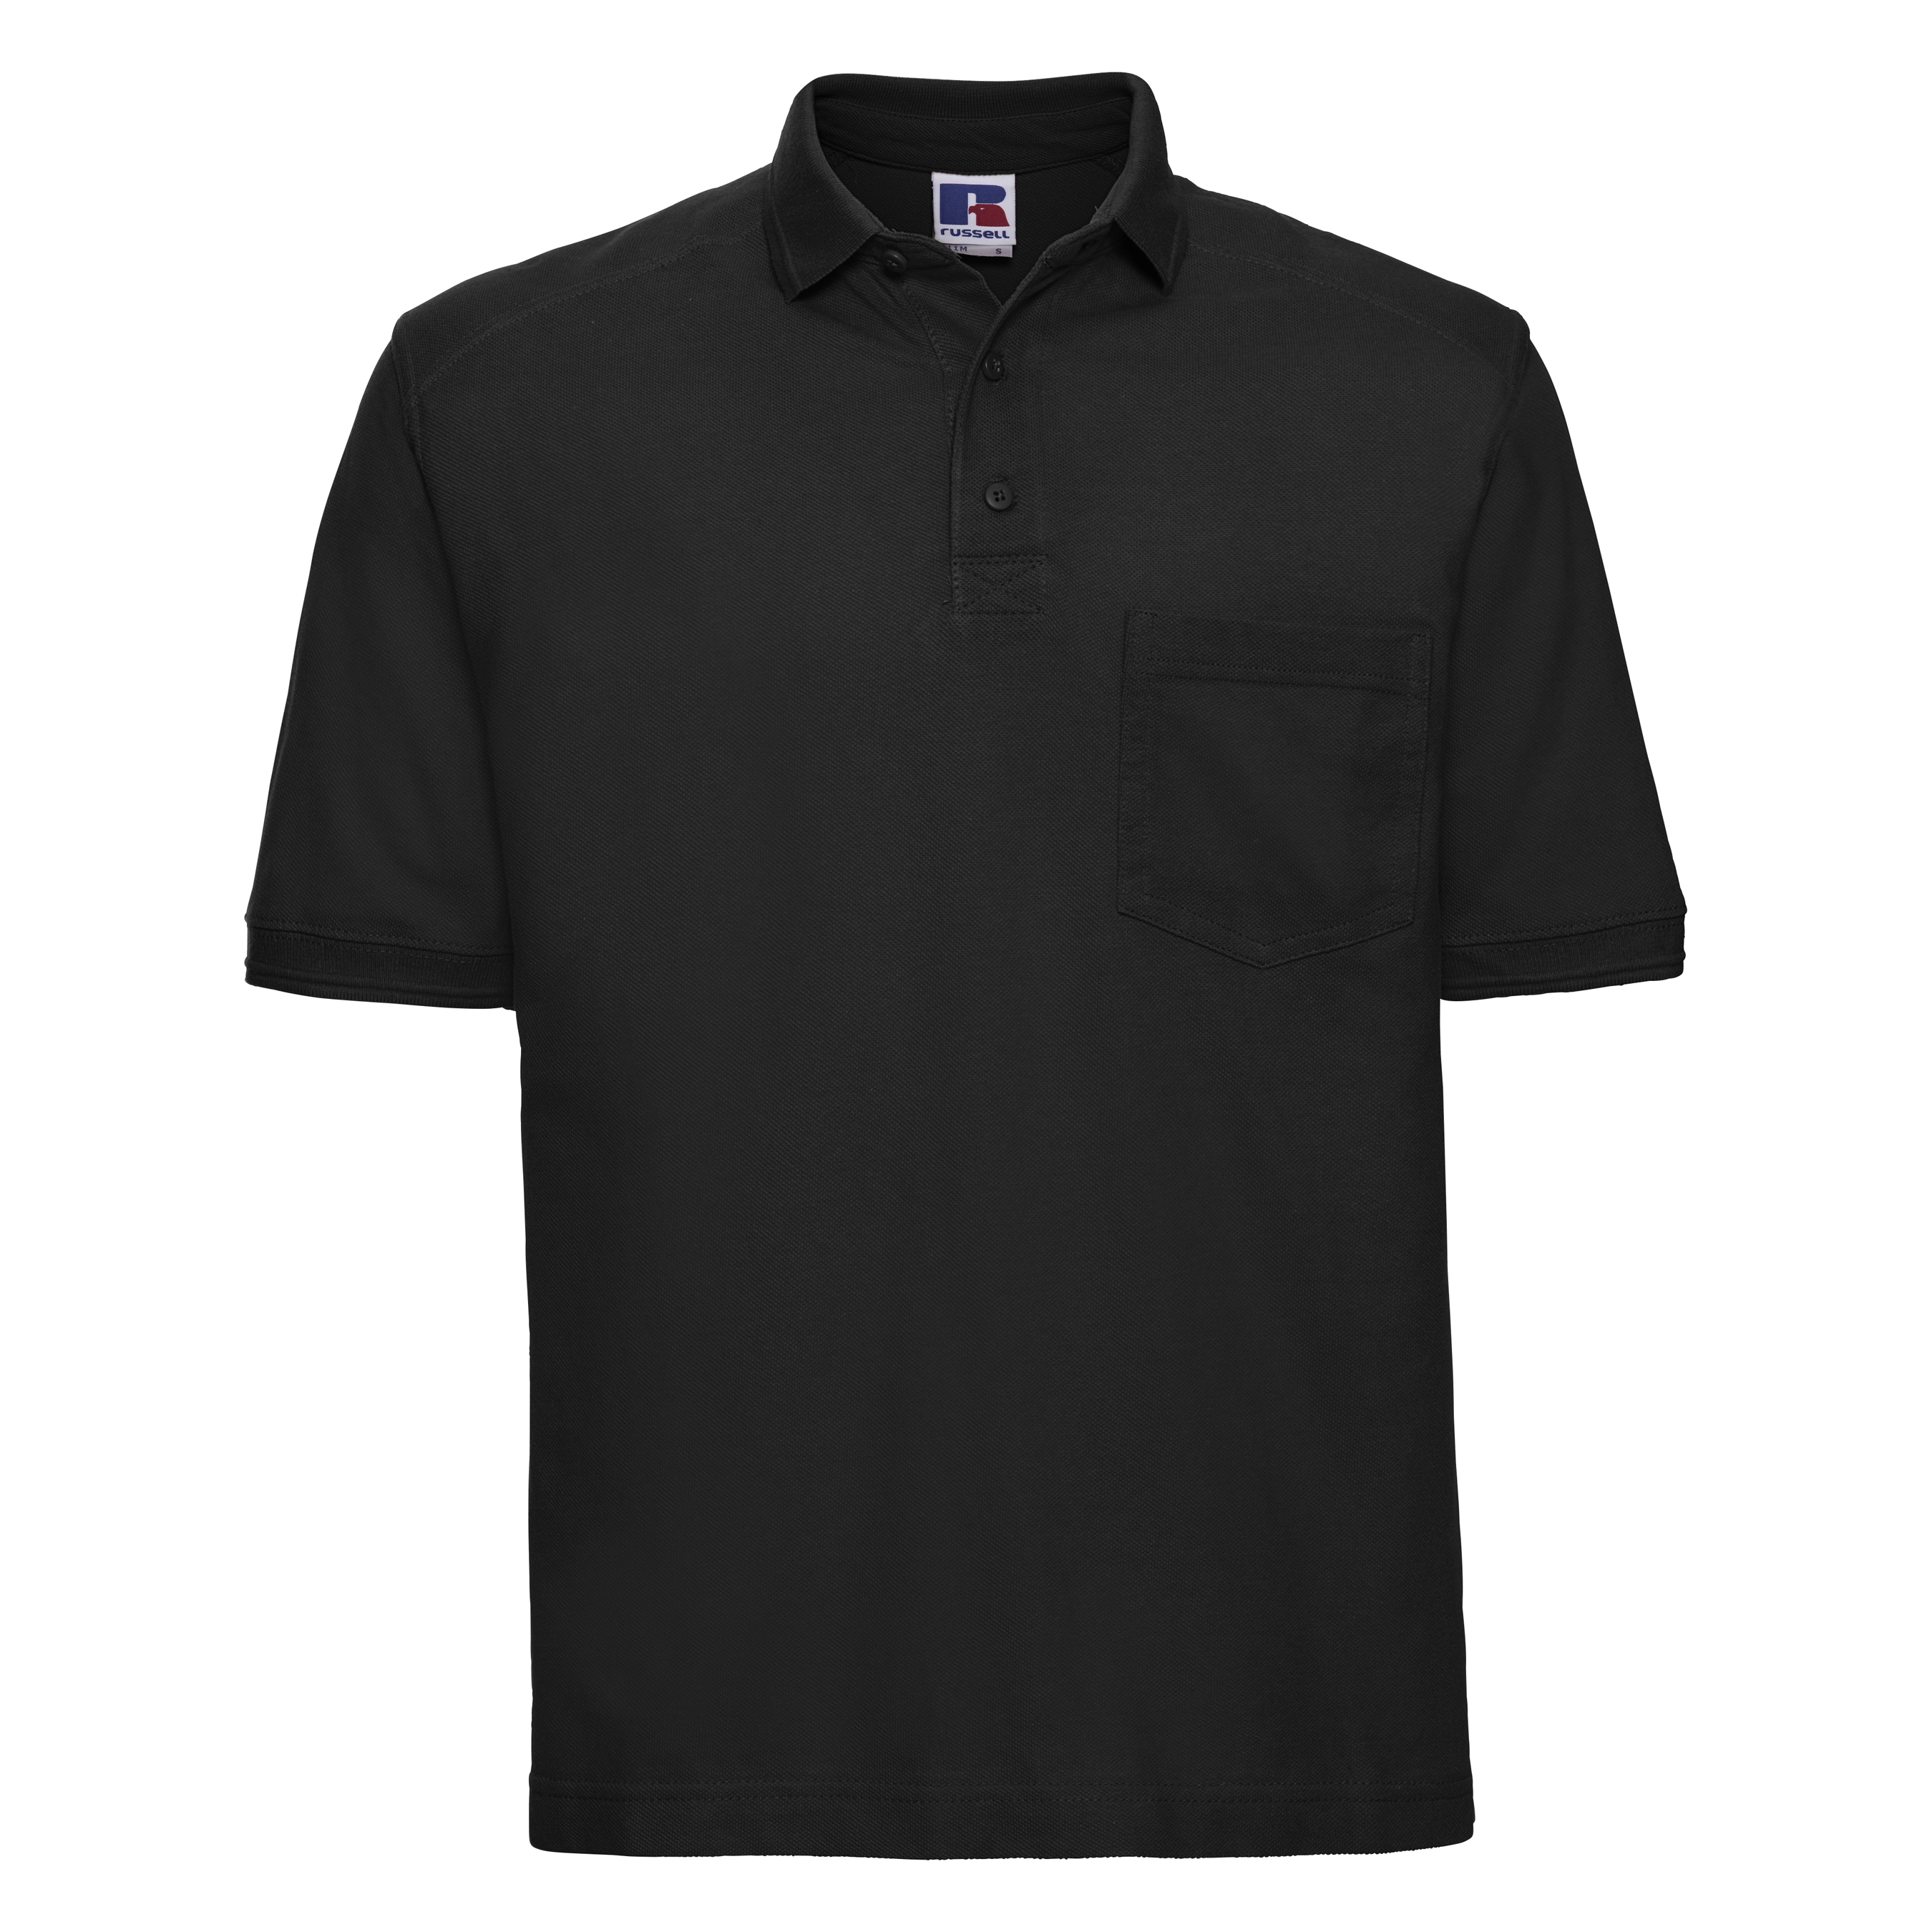 Russell Workwear Mens Heavy Duty Short Sleeve Polo Shirt (XS) (Black)